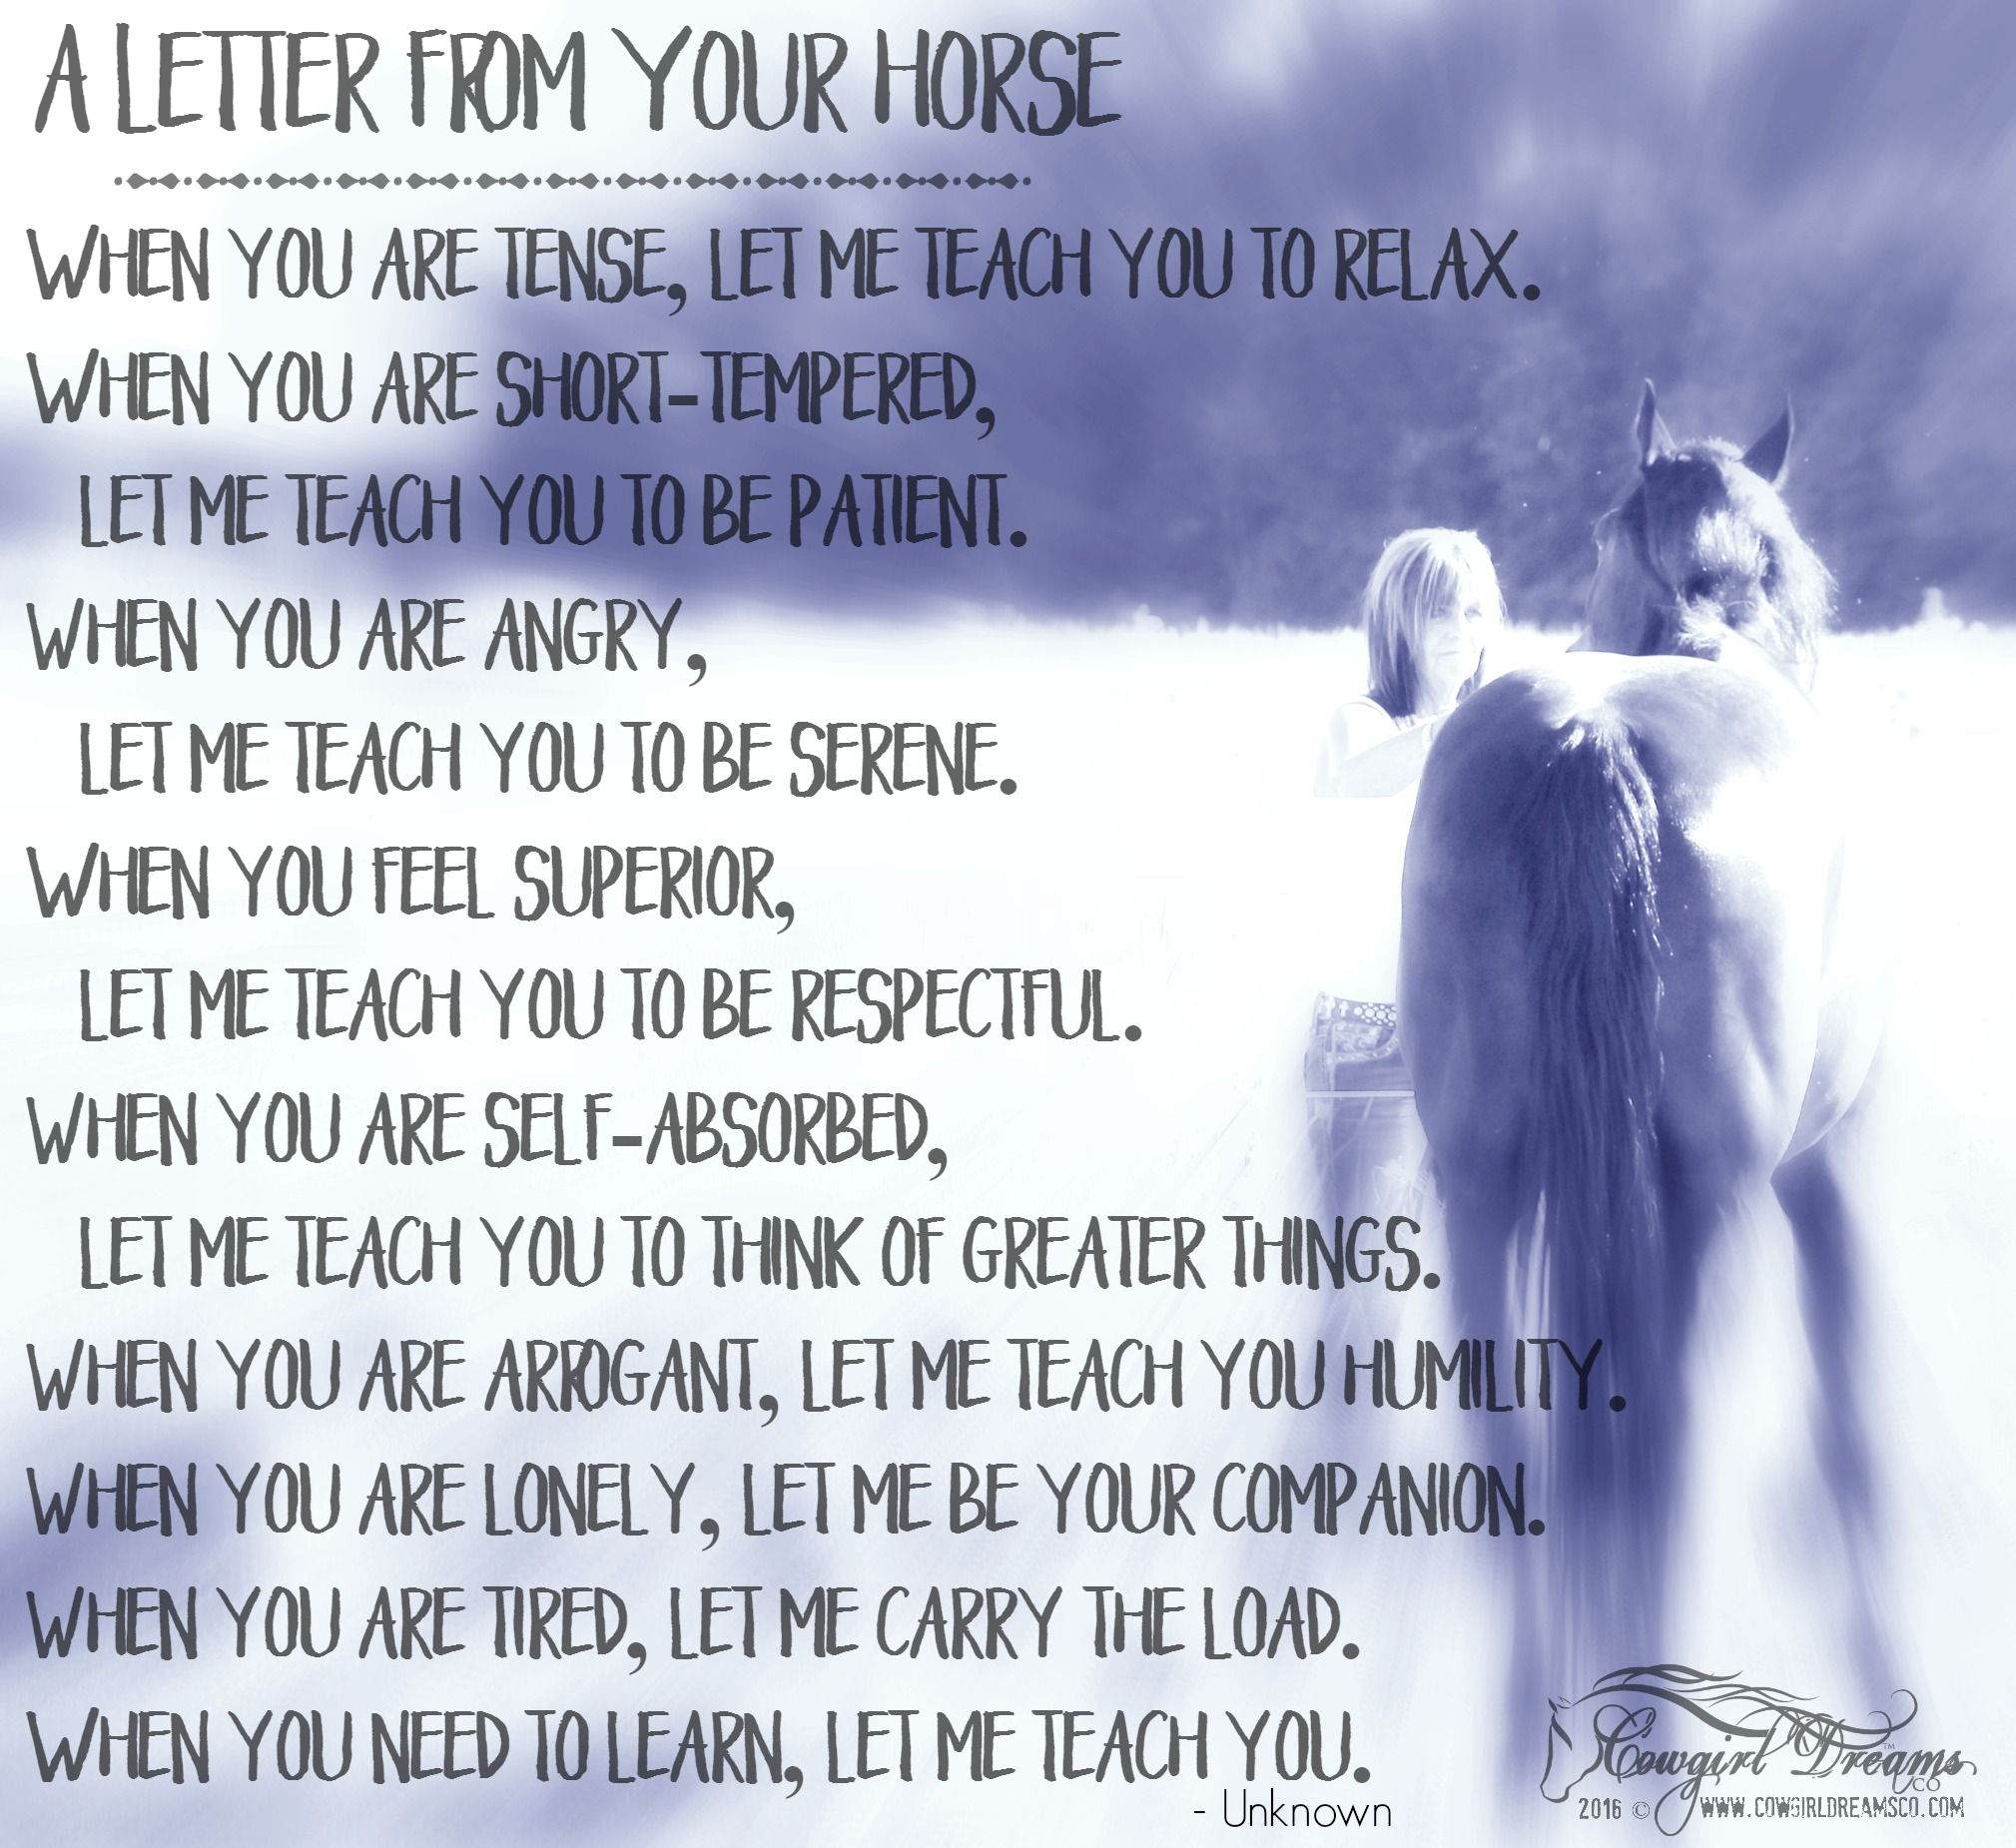 Pics photos quote i wrote for my horse com account s equestrian - Quotes On Losing A Horse Quotesgram Horses Pinterest Horse Equestrian Quotes And Dressage